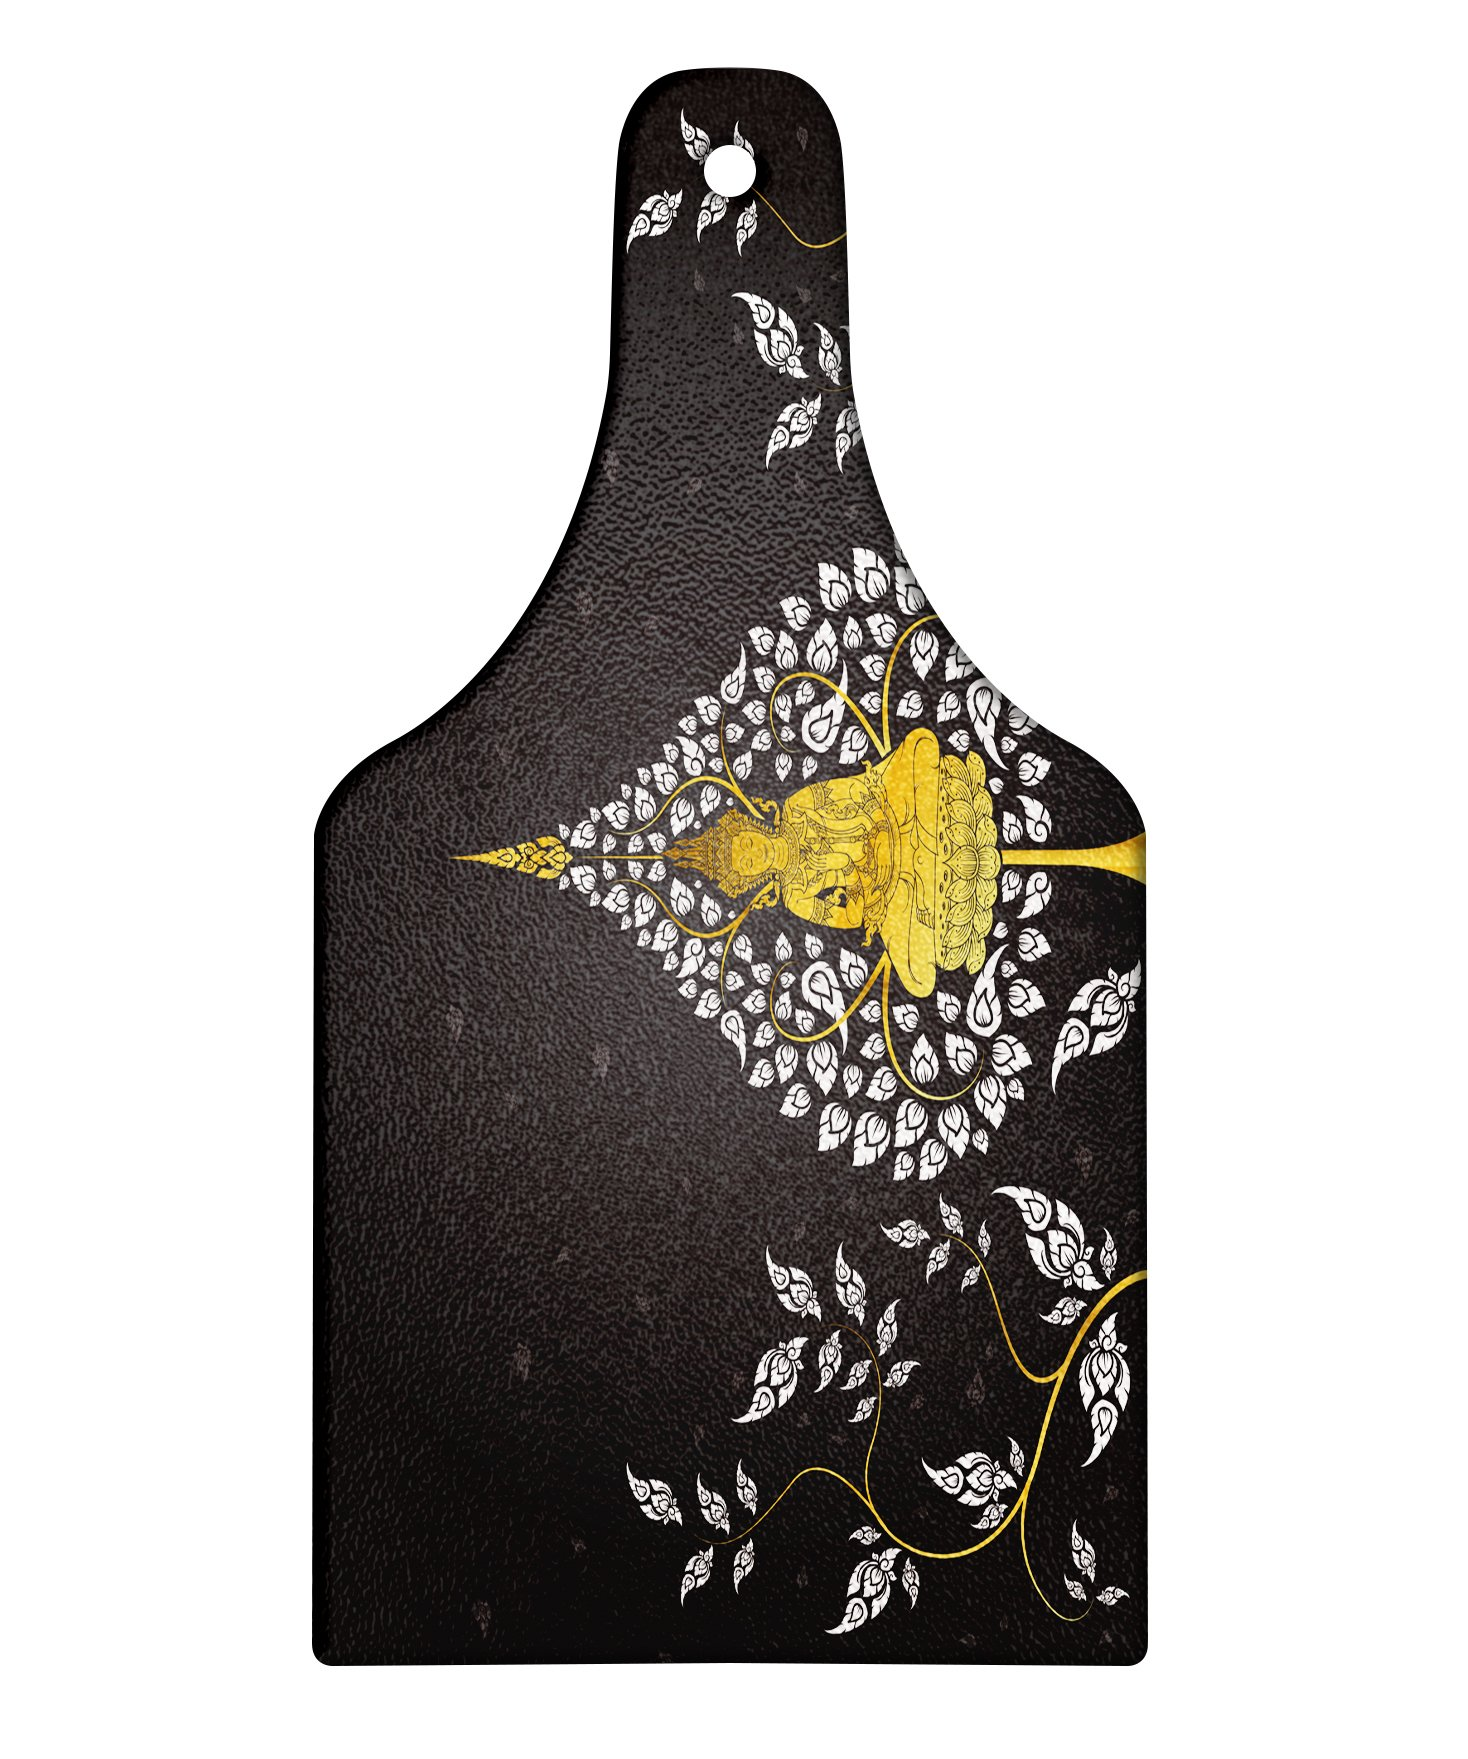 Lunarable Asian Cutting Board, Ancient Religious Thai Character with Floral Elements Meditation, Decorative Tempered Glass Cutting and Serving Board, Wine Bottle Shape, Charcoal Grey White Yellow